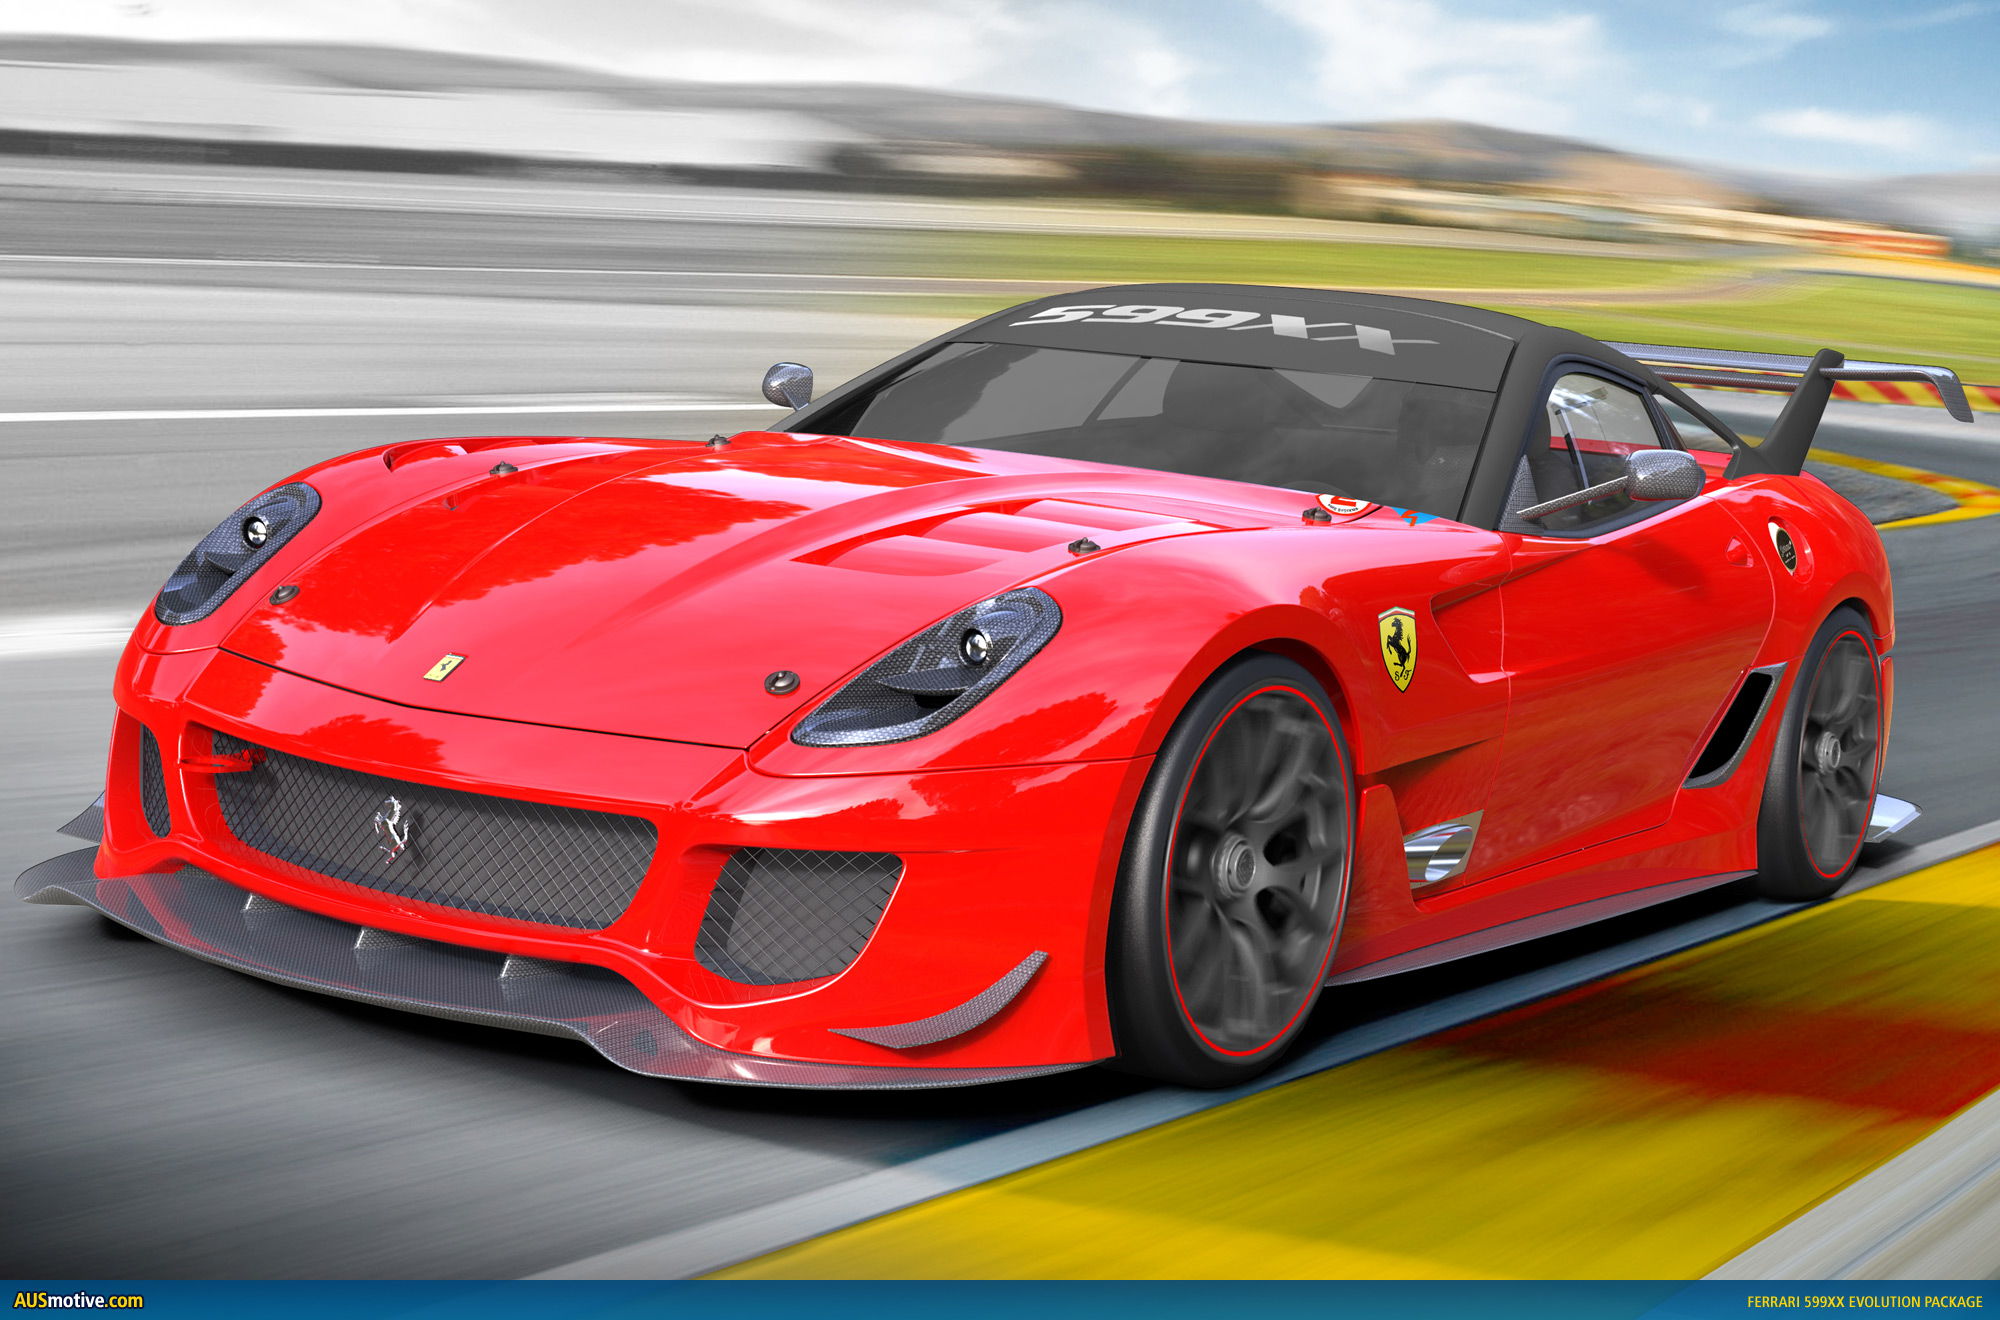 Ferrari 599XX Evolution Package Wallpaper HD